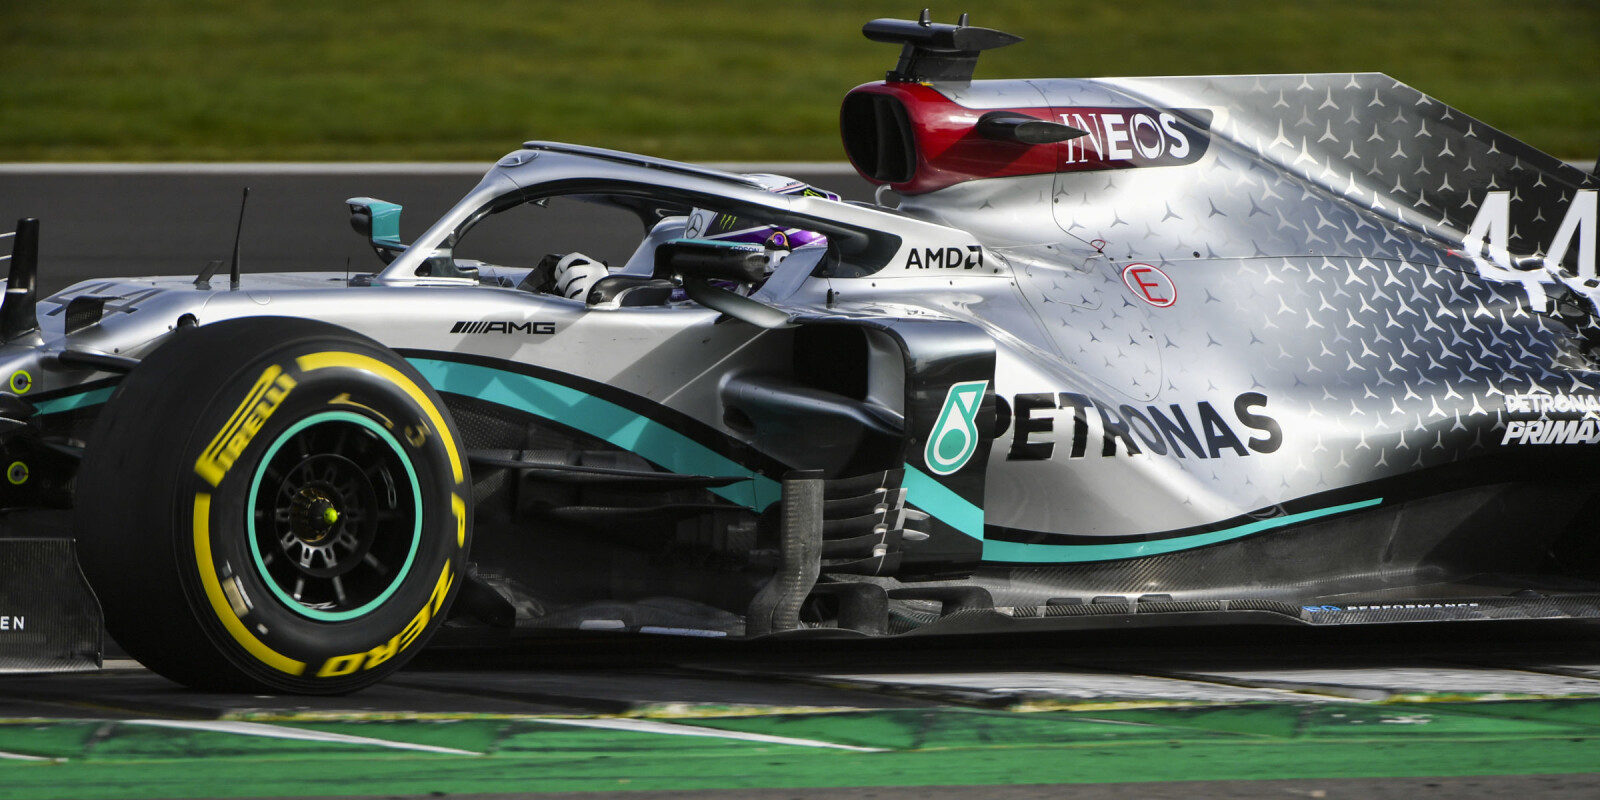 Images of the reveal and shakedown of the 2020 Mercedes W11 F1 car